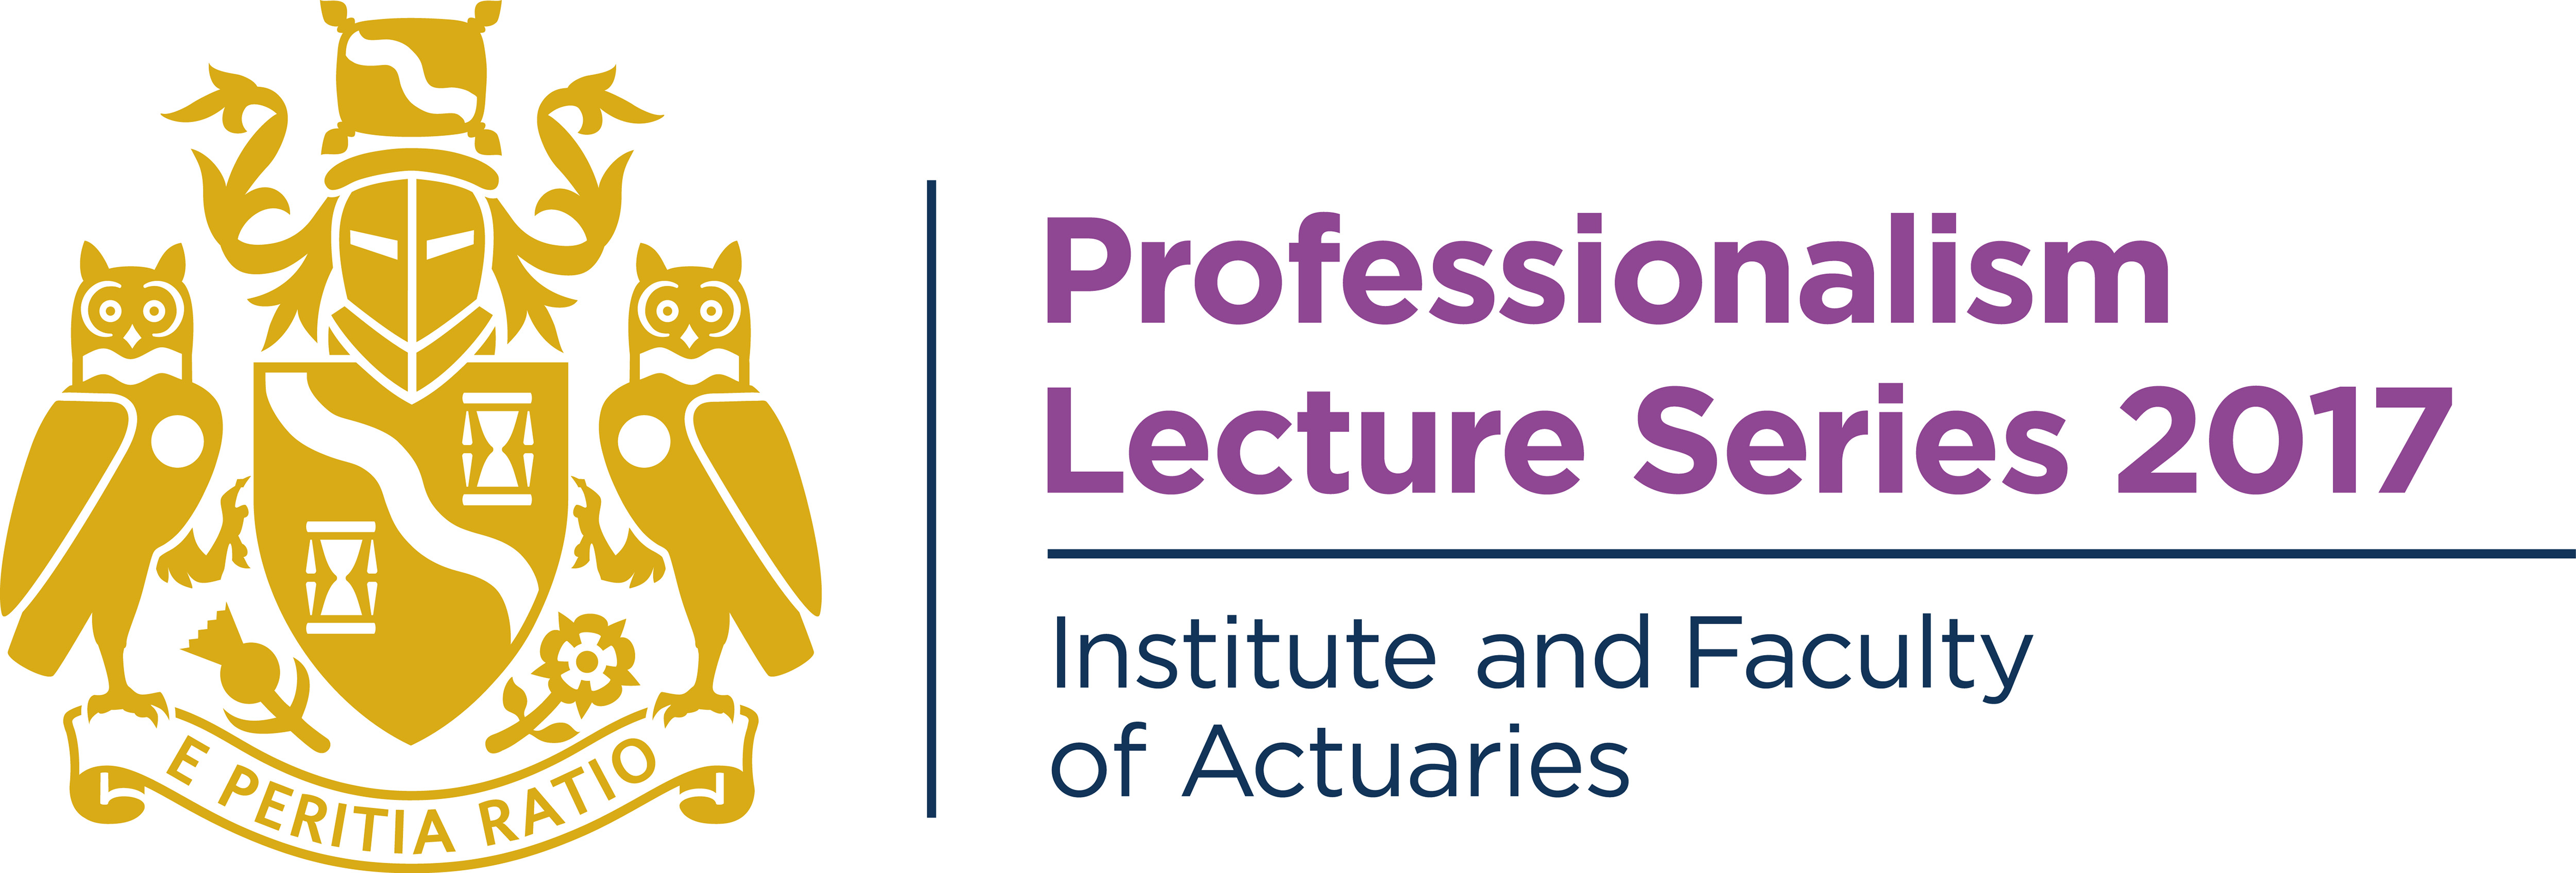 Professionalism Lecture Series 2017